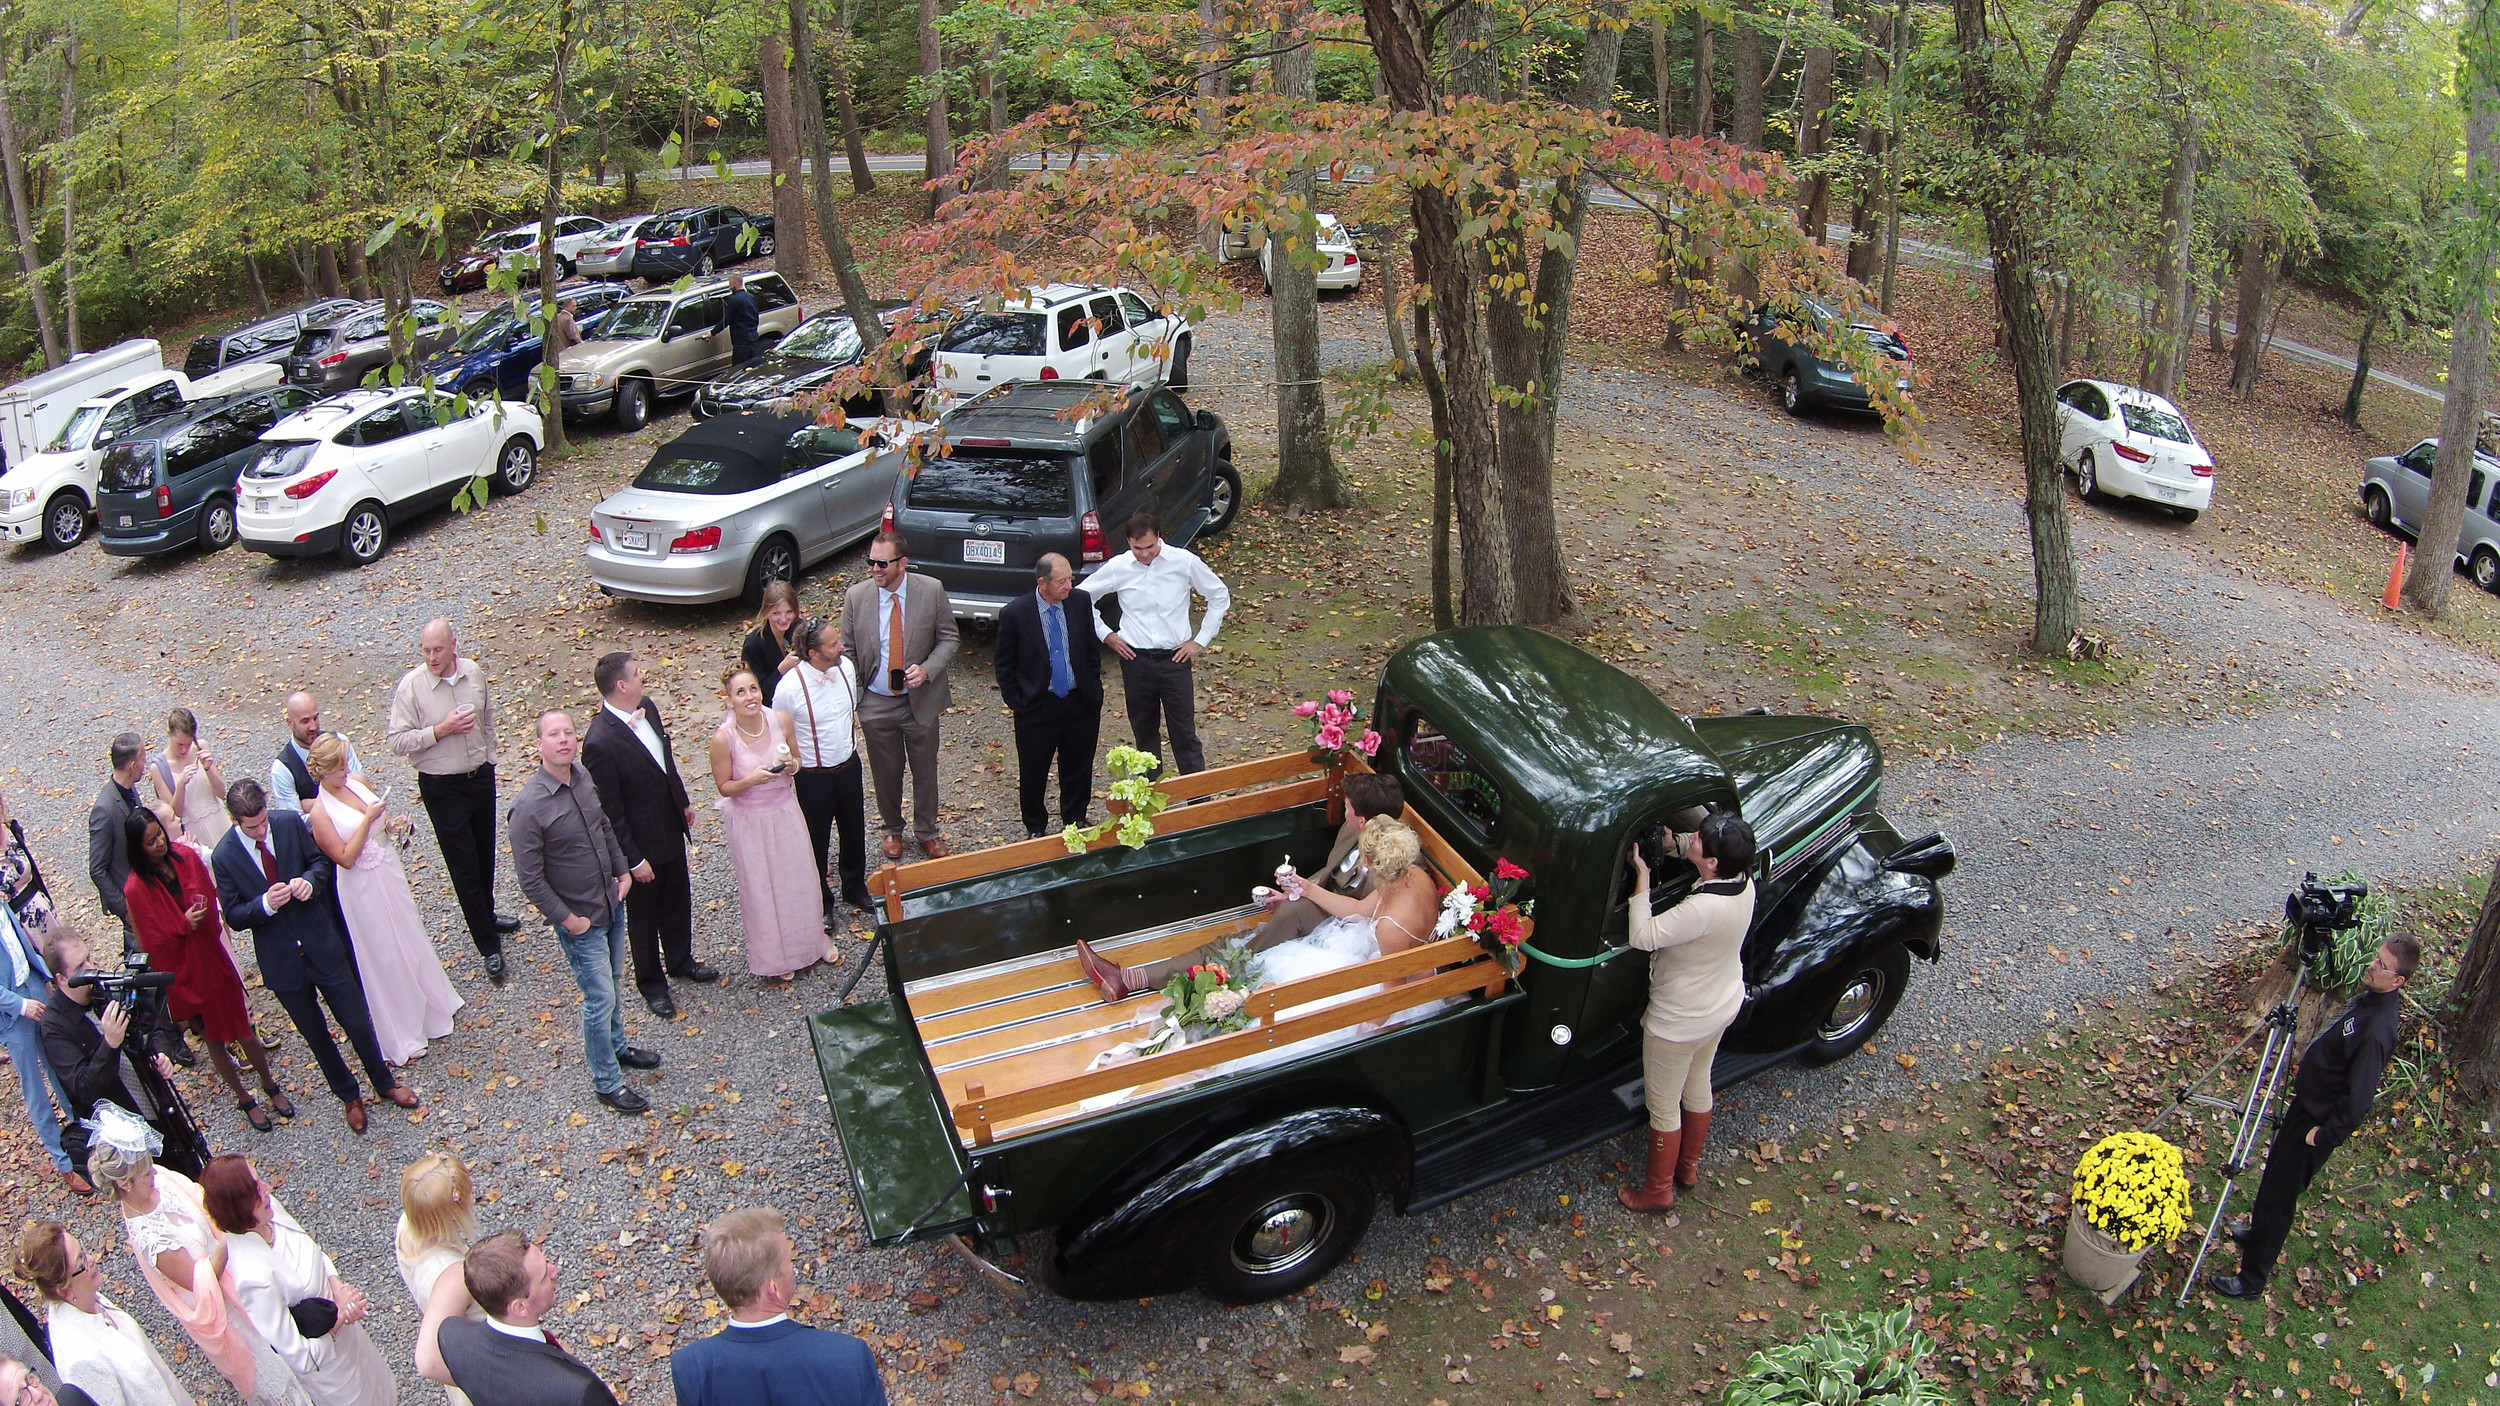 Drawing away: aerial imaging creates a magical effect toward the end of a wedding video.